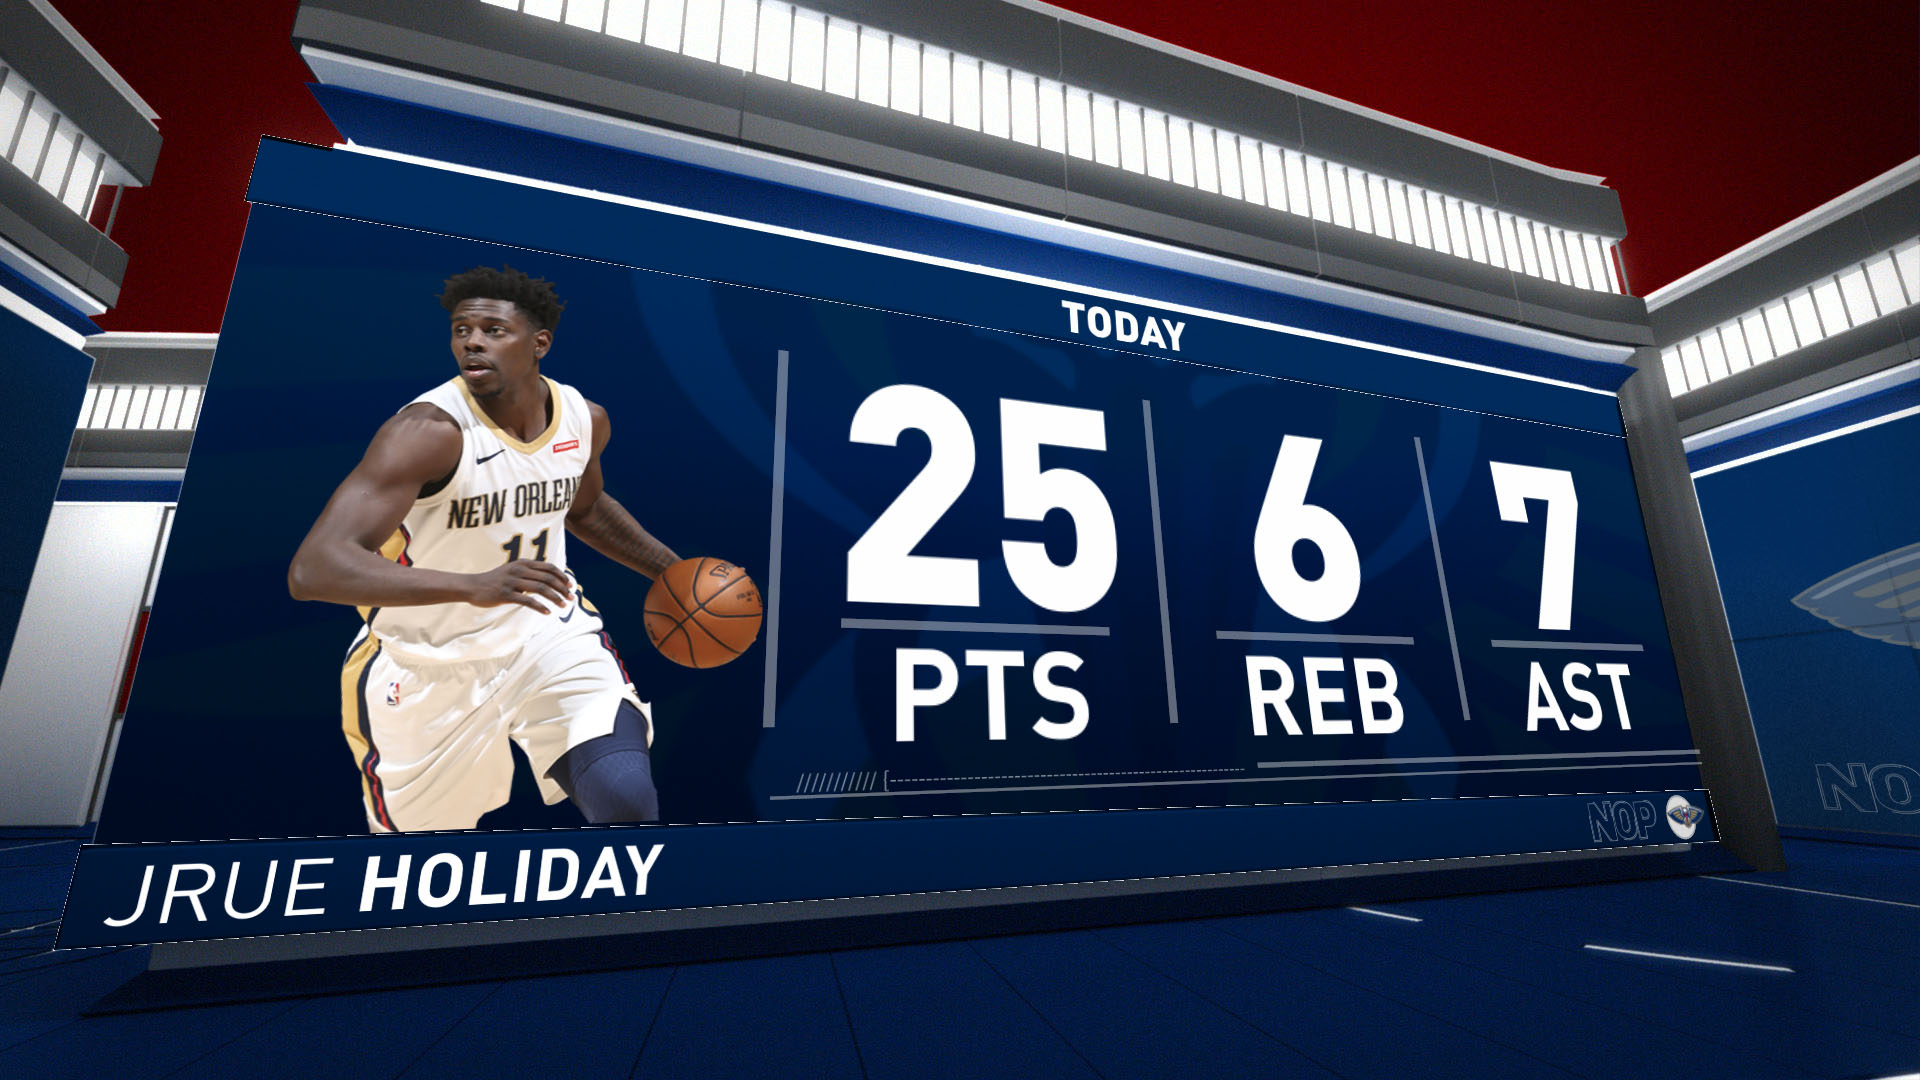 Stat Leader Highlights: Jrue Holiday notches 25 vs. Golden State Warriors